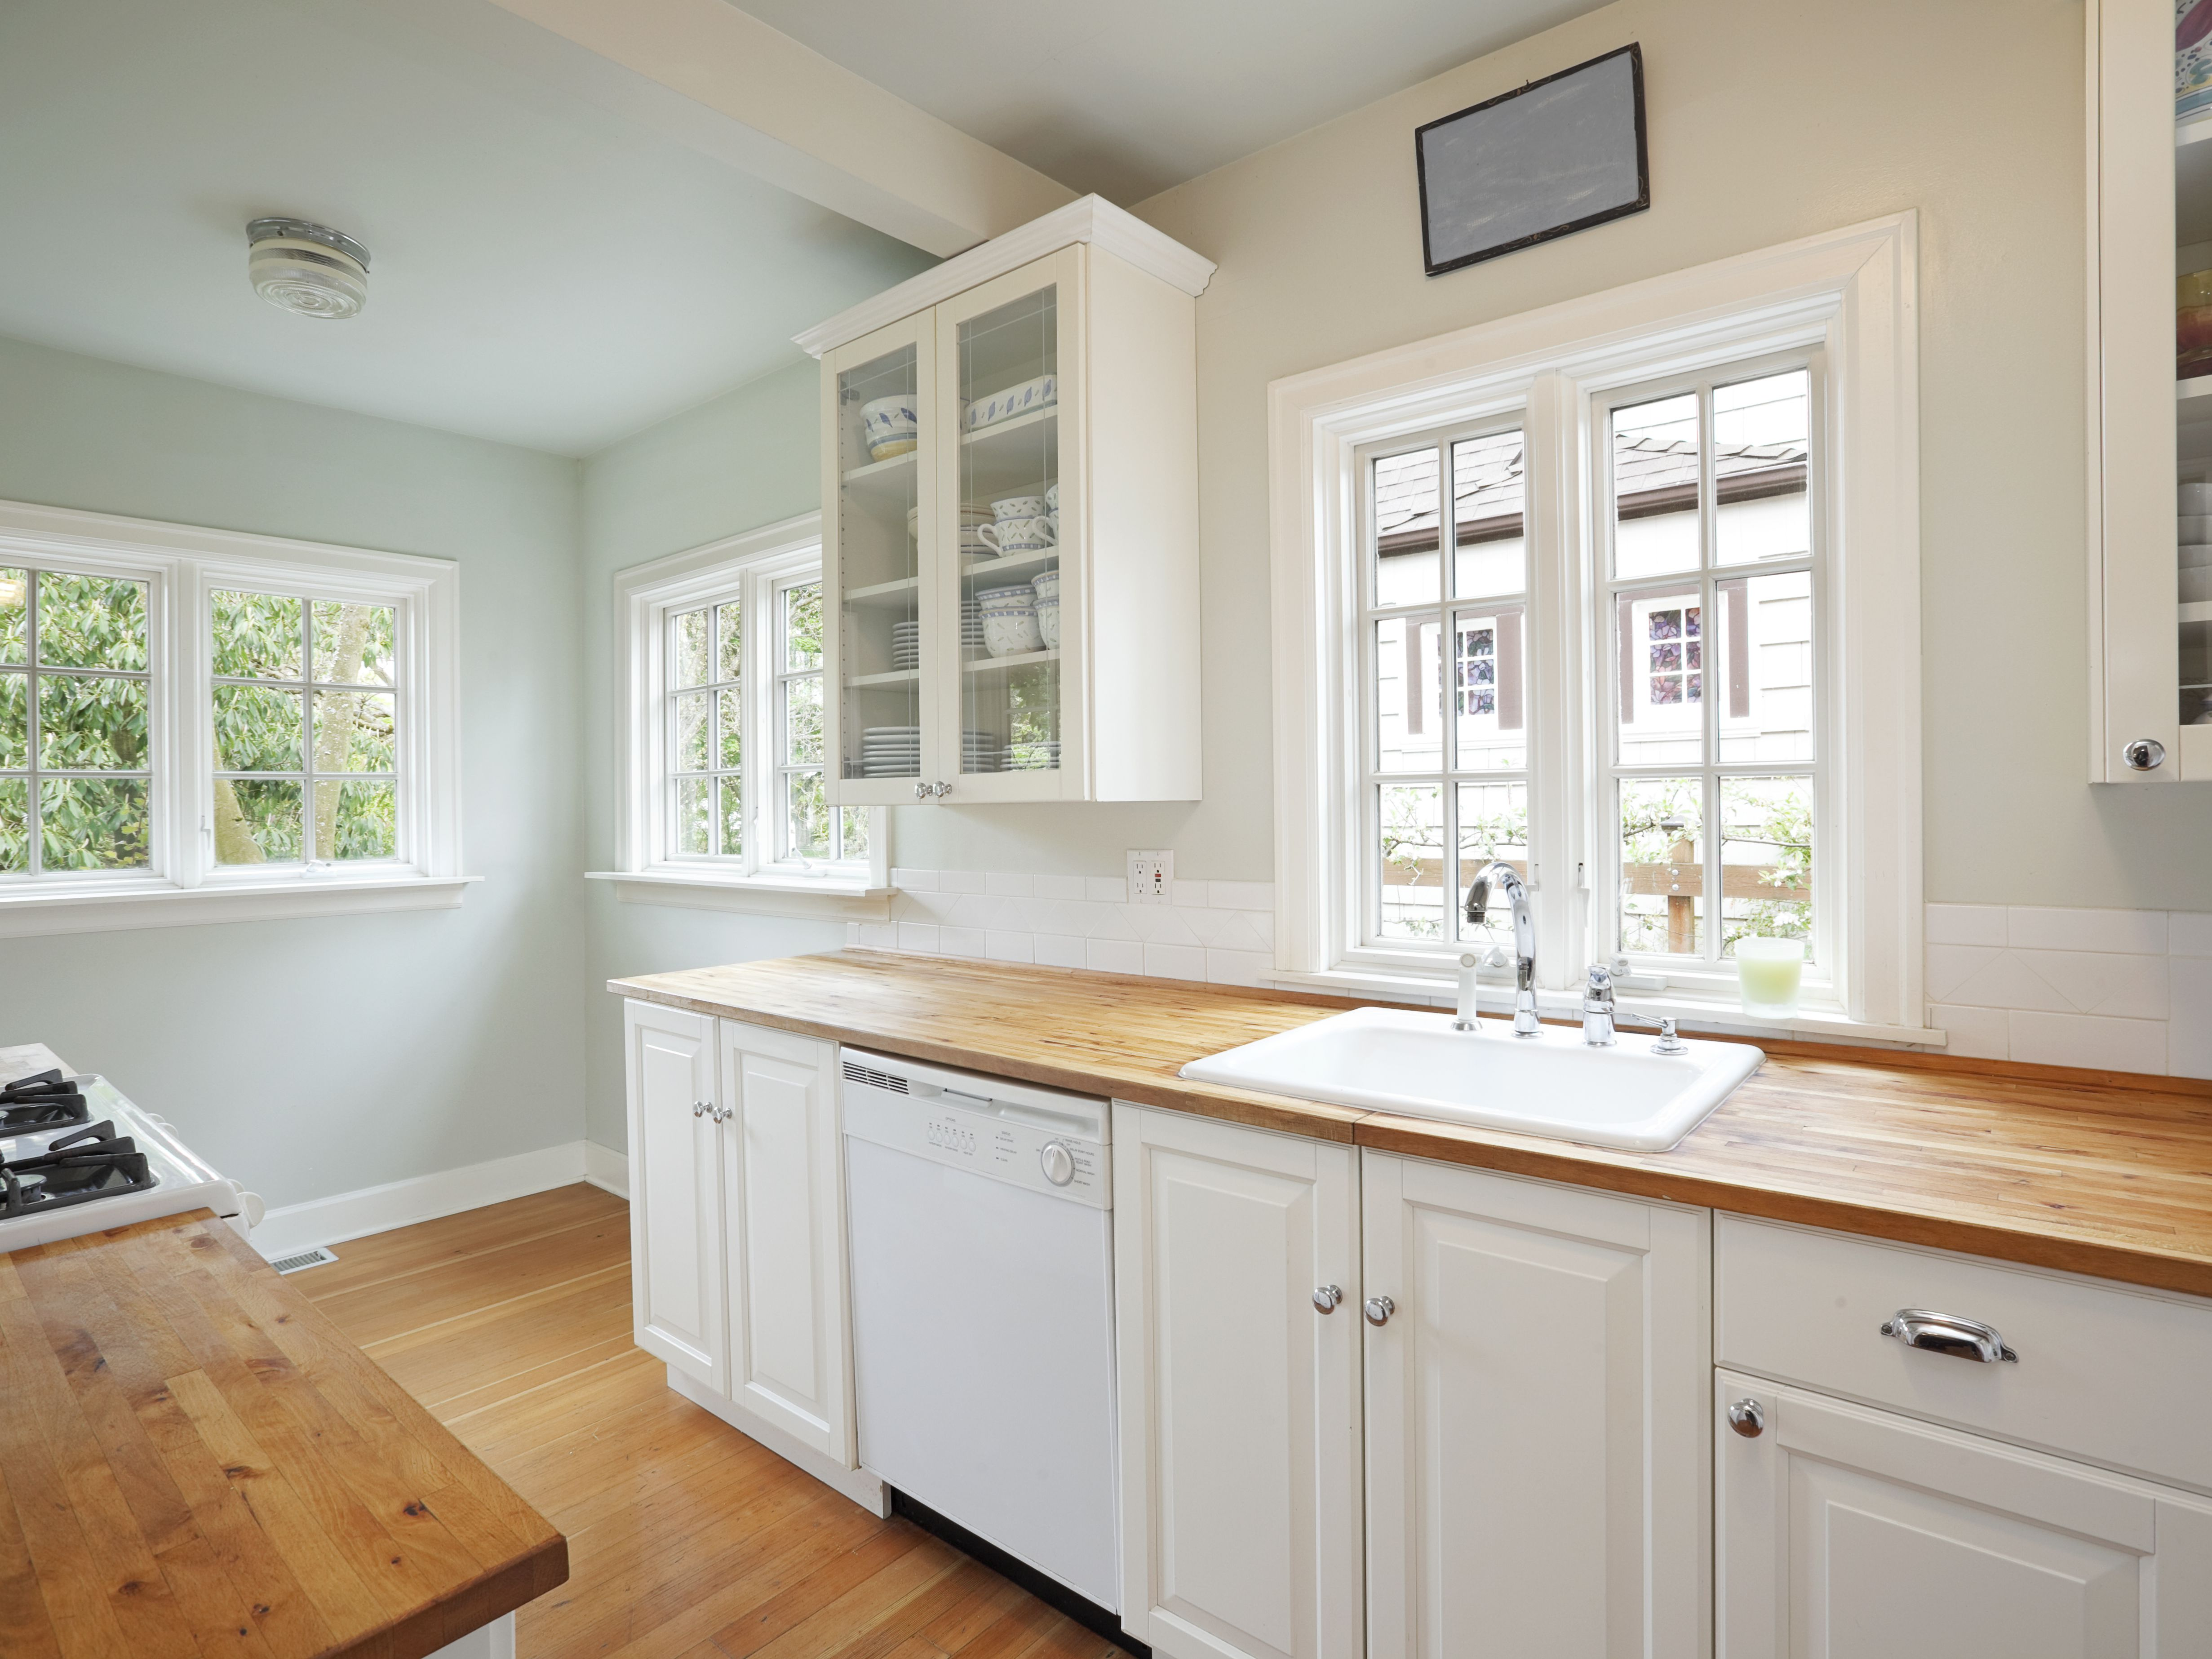 Painting Strategies That Make A Small Kitchen Look Larger